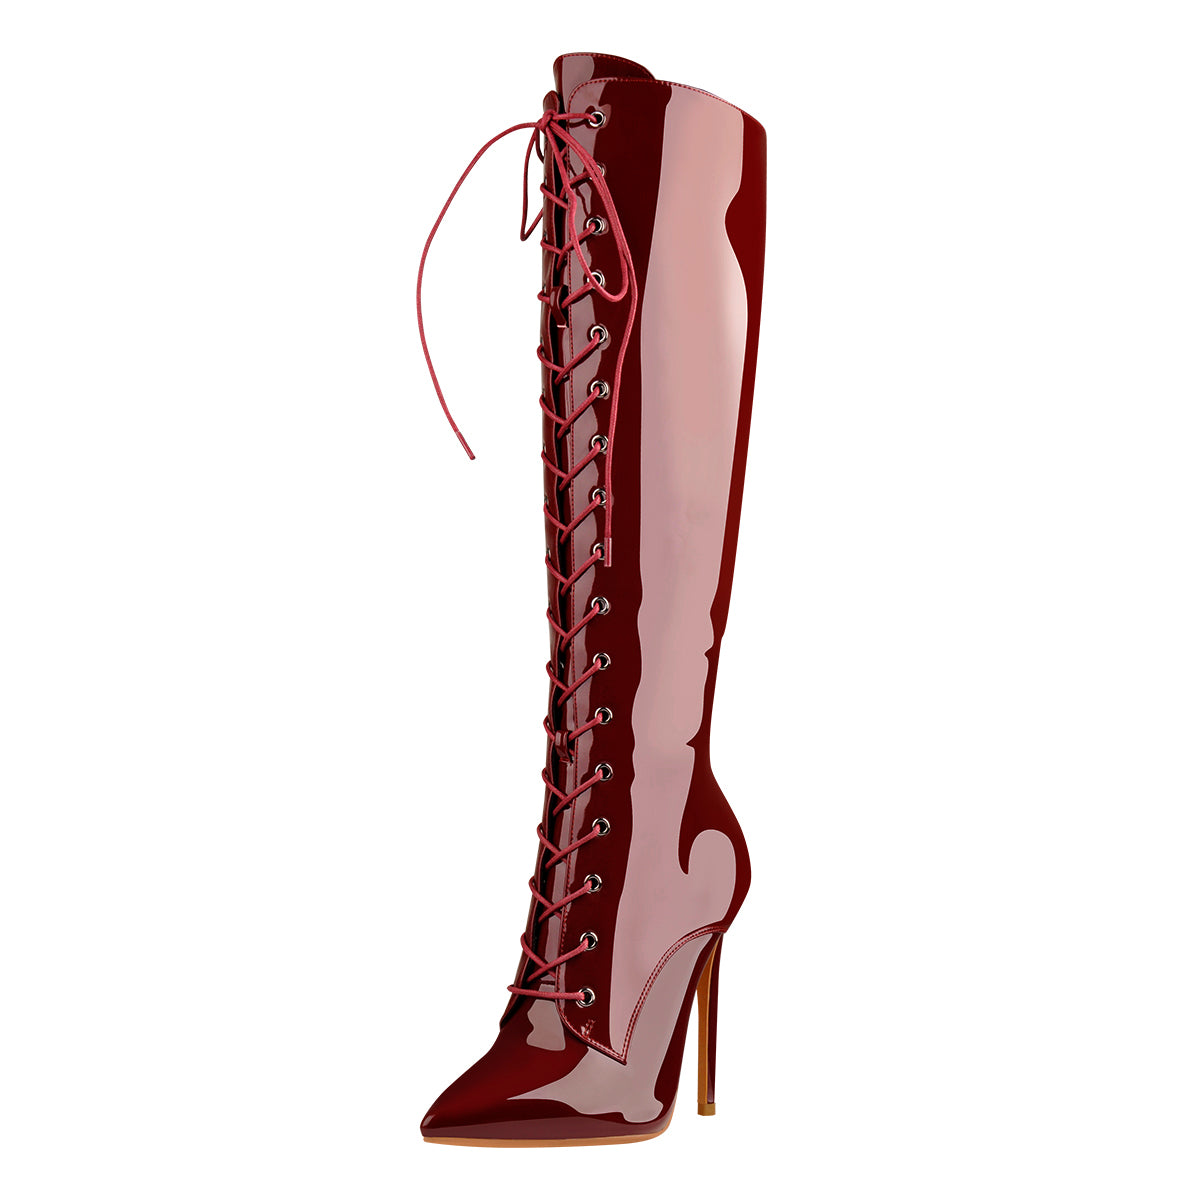 Red Patent Leather Lace Up Pointed Toe Knee High Boots